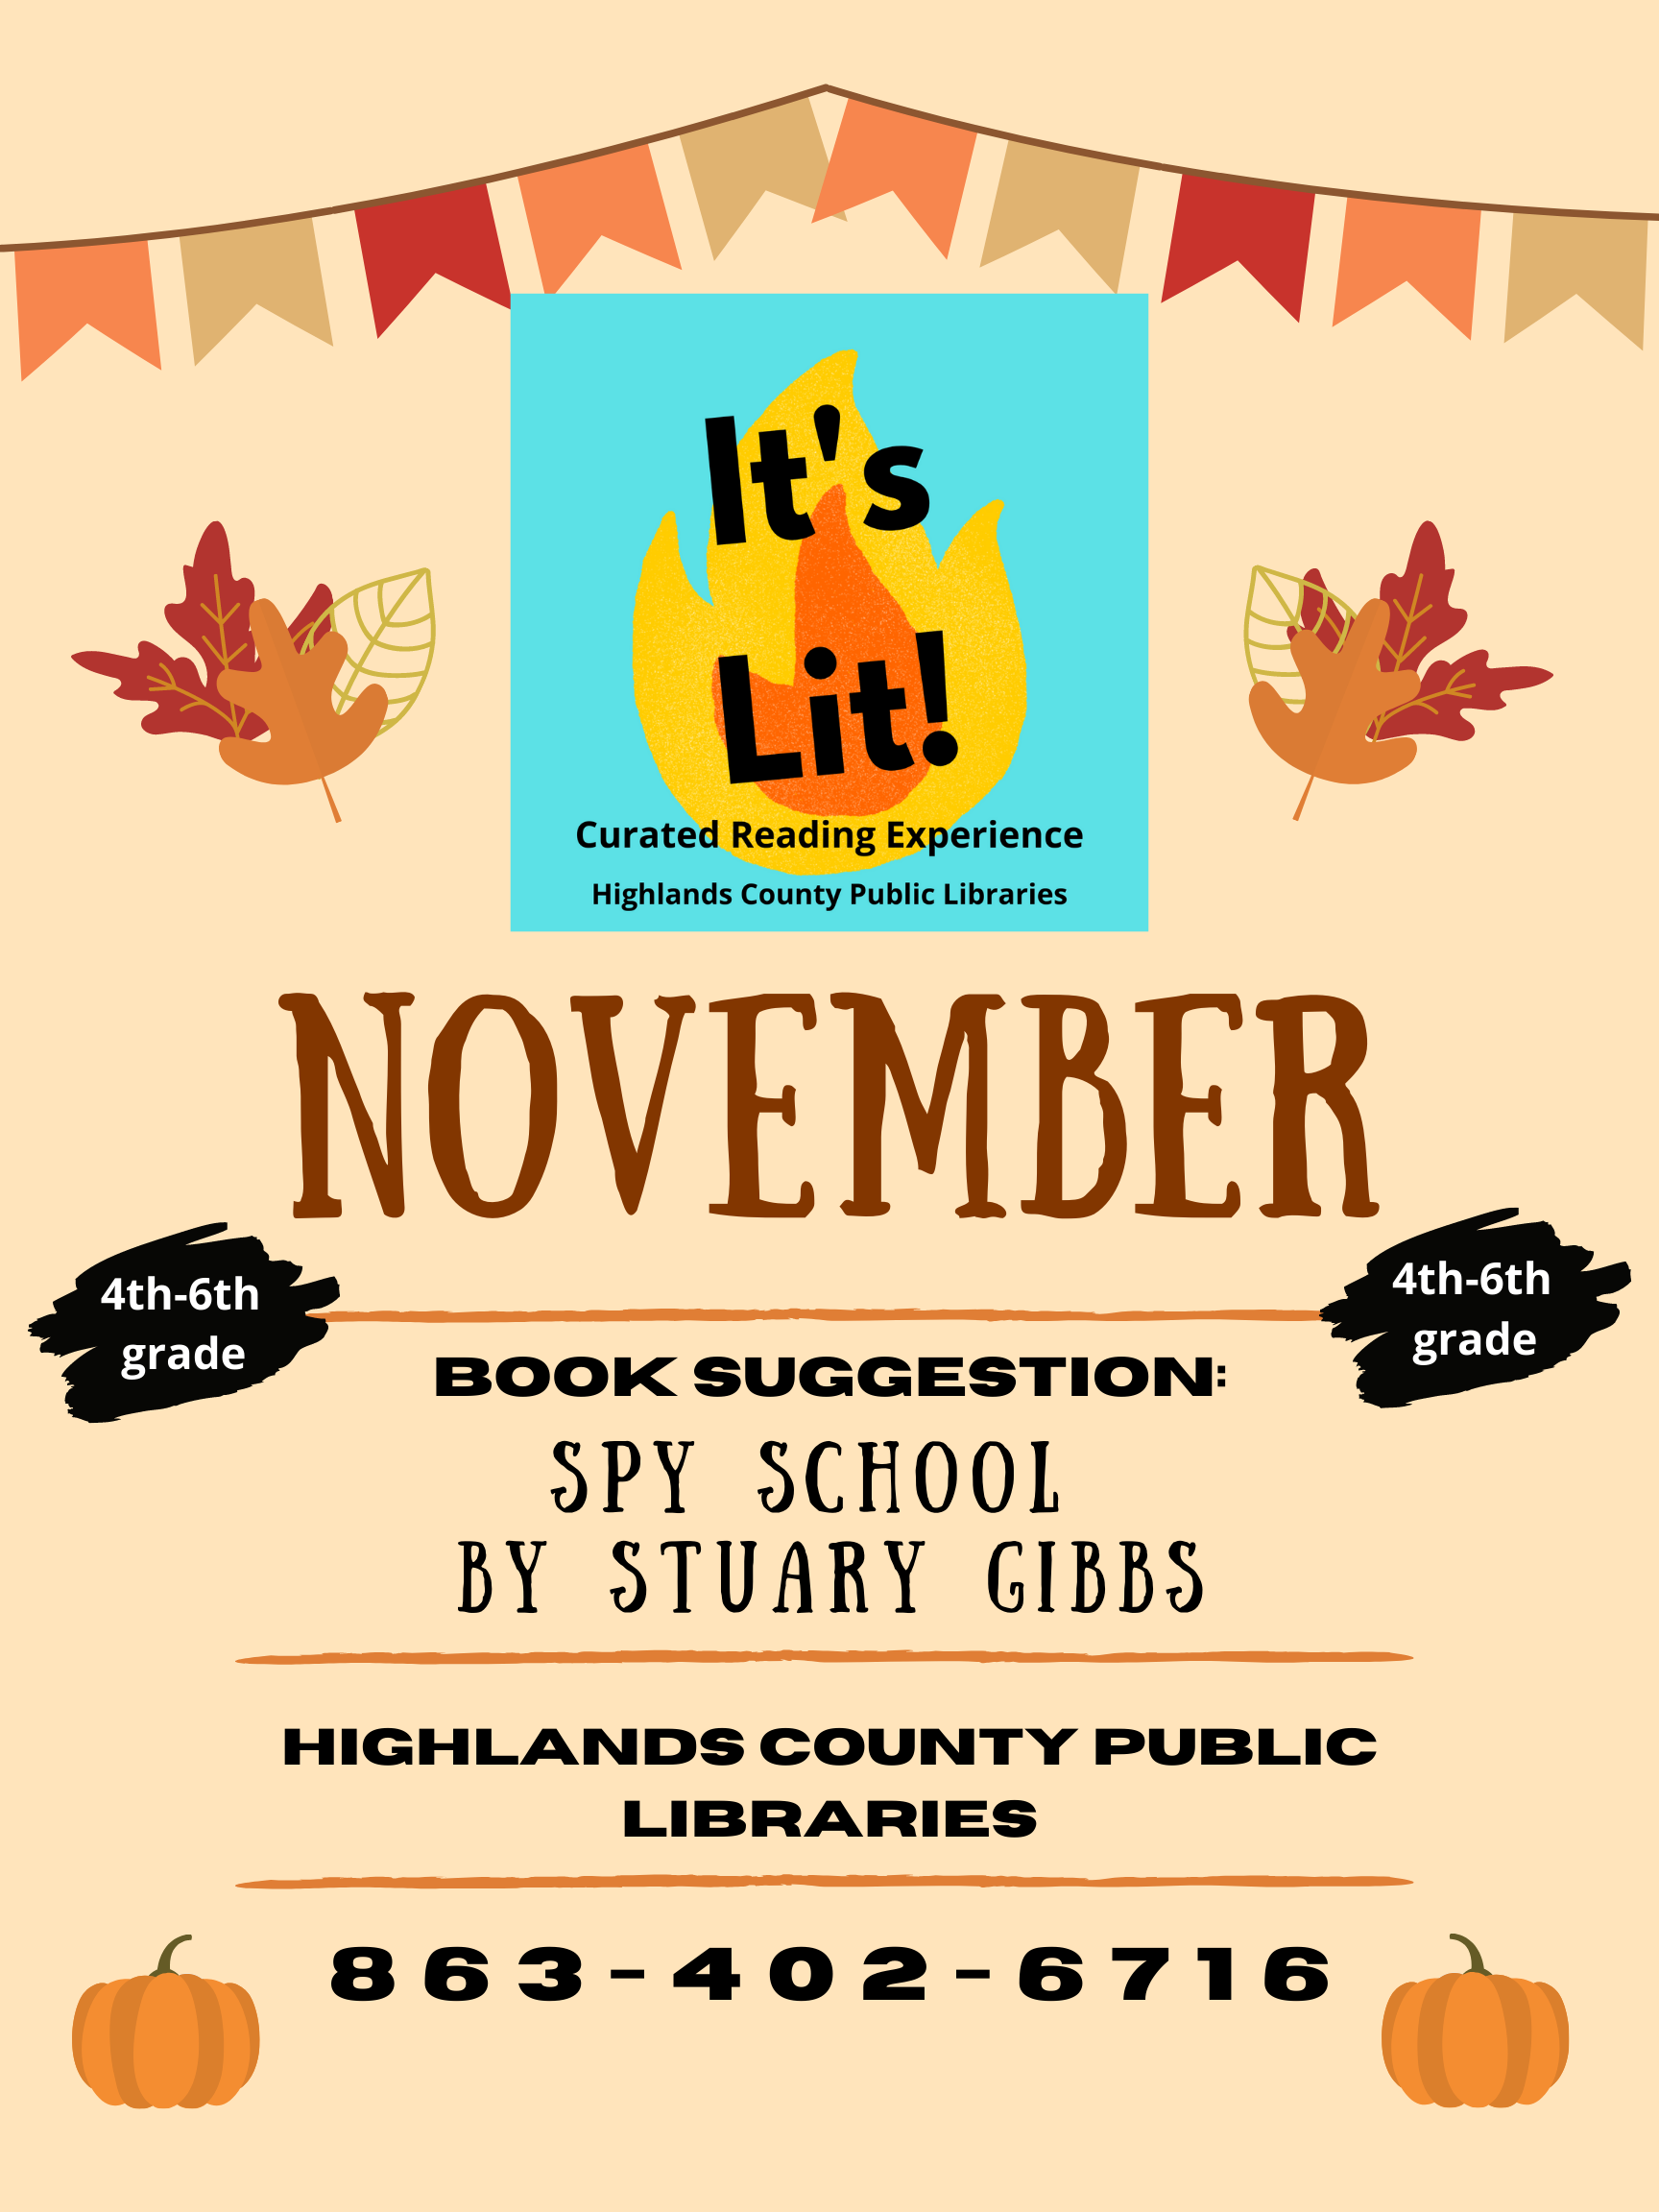 """During November, Highlands County Libraries are featuring Spy School by Stuart Gibbs as the """"It's Lit"""" book of the month. Ask for the coordinating activities at any of the three Highlands County libraries. There are limited print copies of the book available but no-cost electronic copies are available for those who have smart devices."""